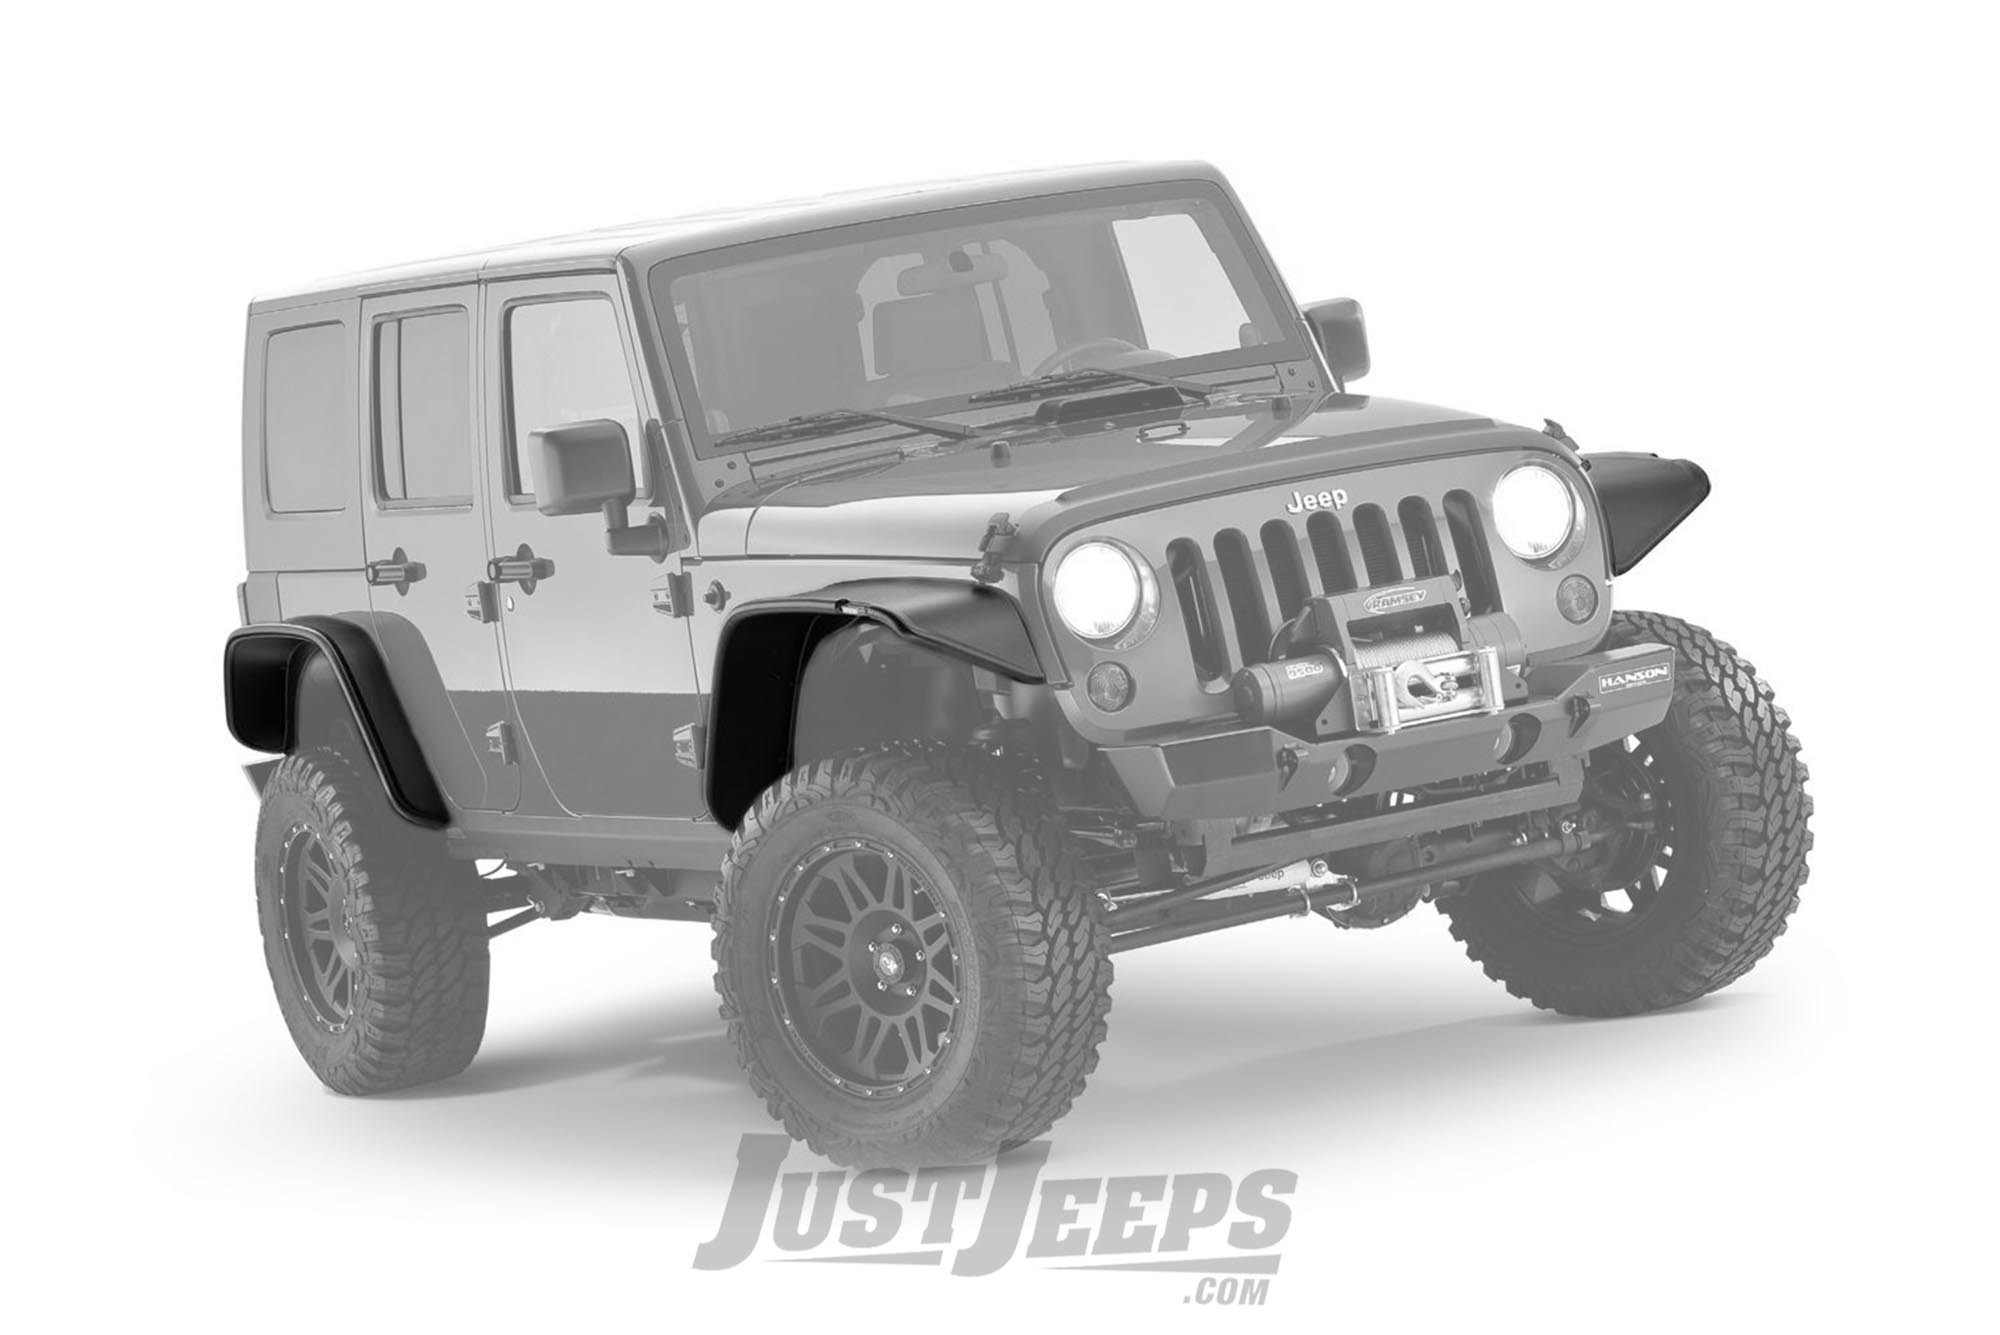 Bushwacker Flat Style Fender Flares For 2007-18 Jeep Wrangler JK Unlimited 4 Door Models